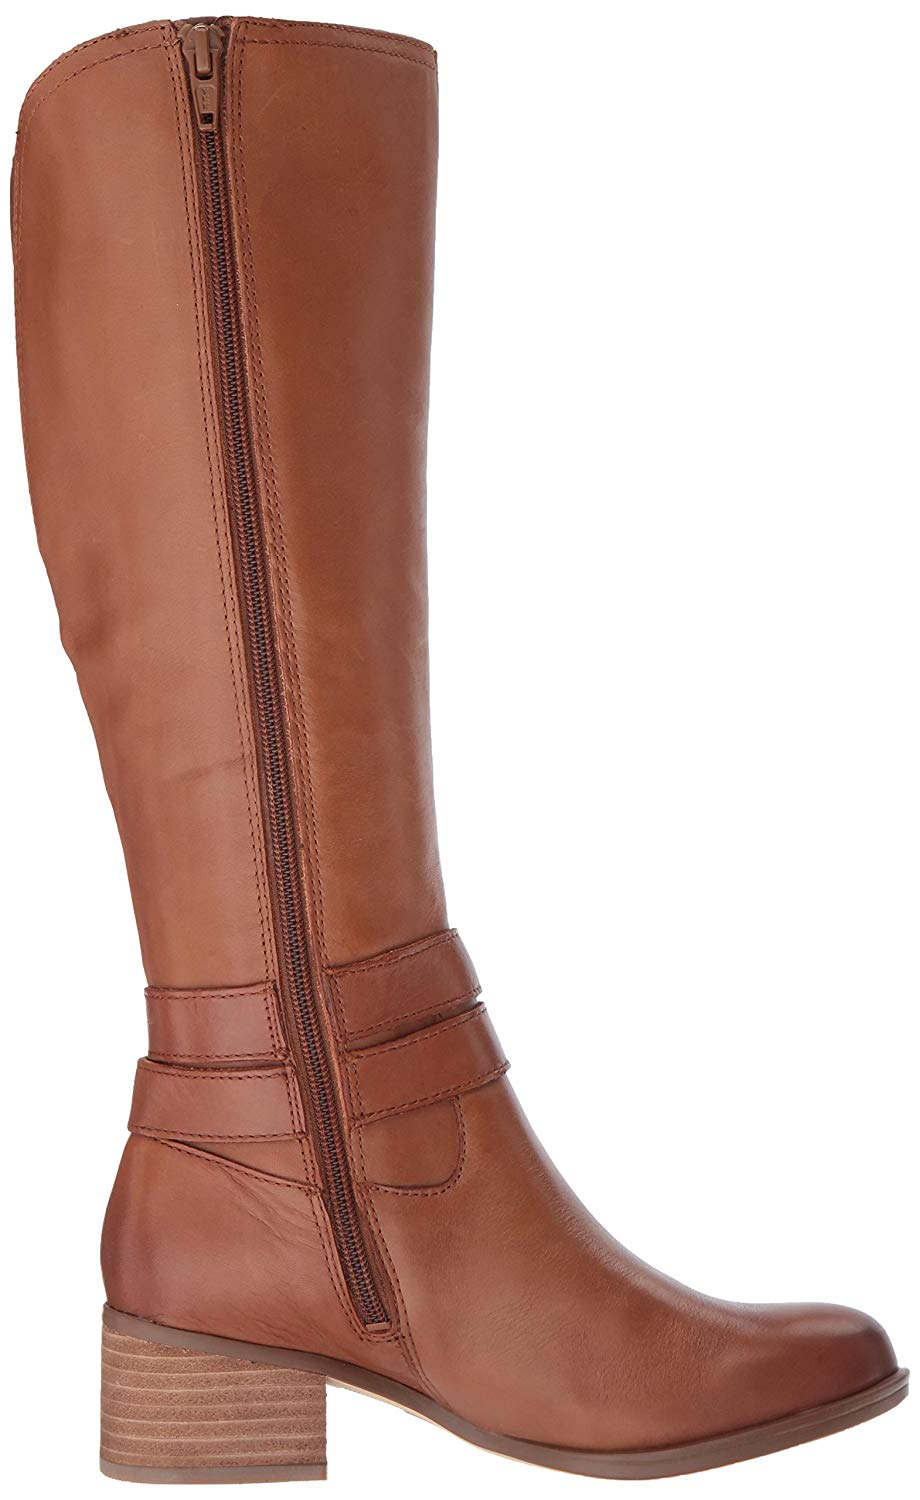 2b469e2be784 Naturalizer - Naturalizer Women s Dev Riding Boot - Walmart.com